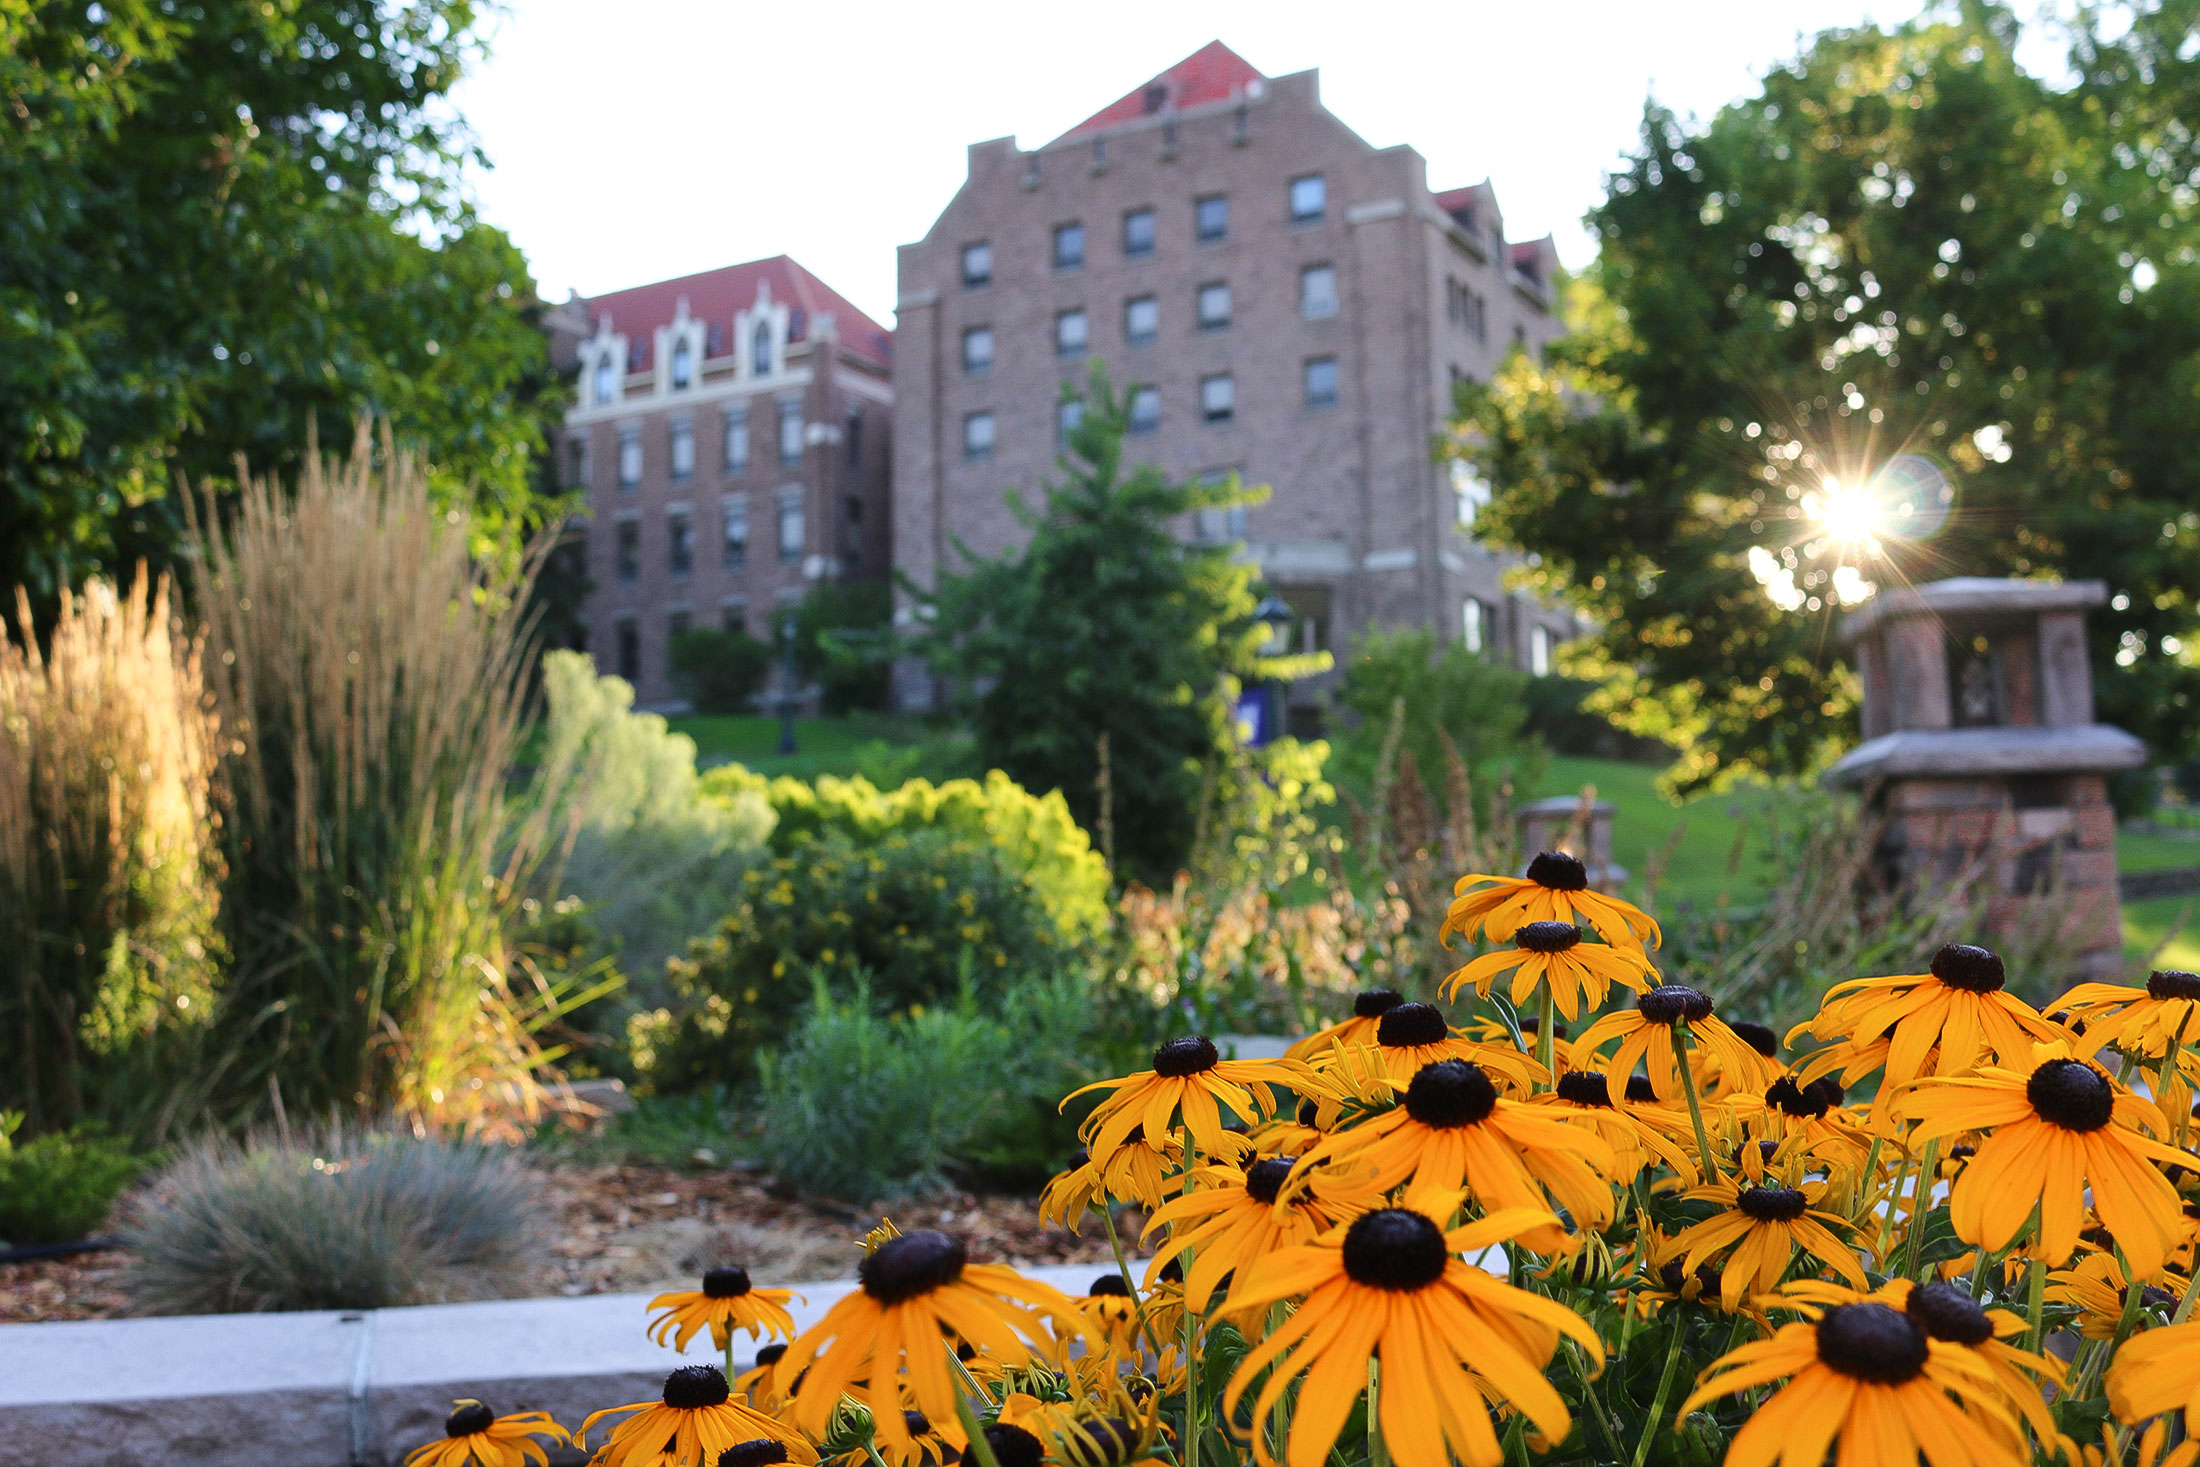 Mission Statement - View of St. Charles Hall on the Carroll Campus with yellow flowers in the foreground